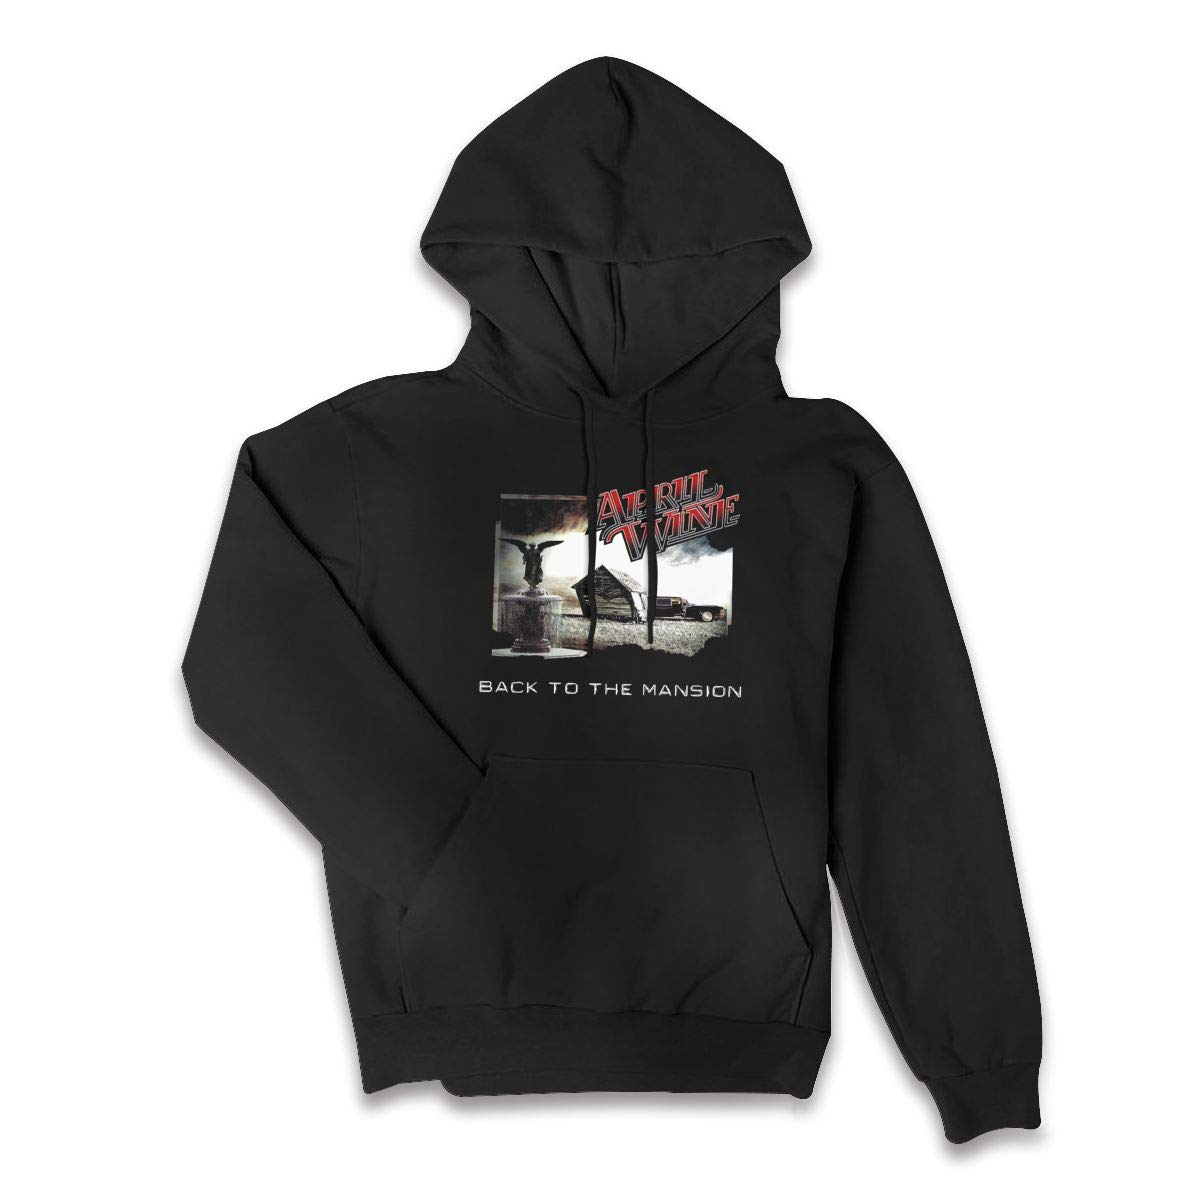 Erman Color Name Comfortable April Wine Pullover Hooded Shirts With Pocket S